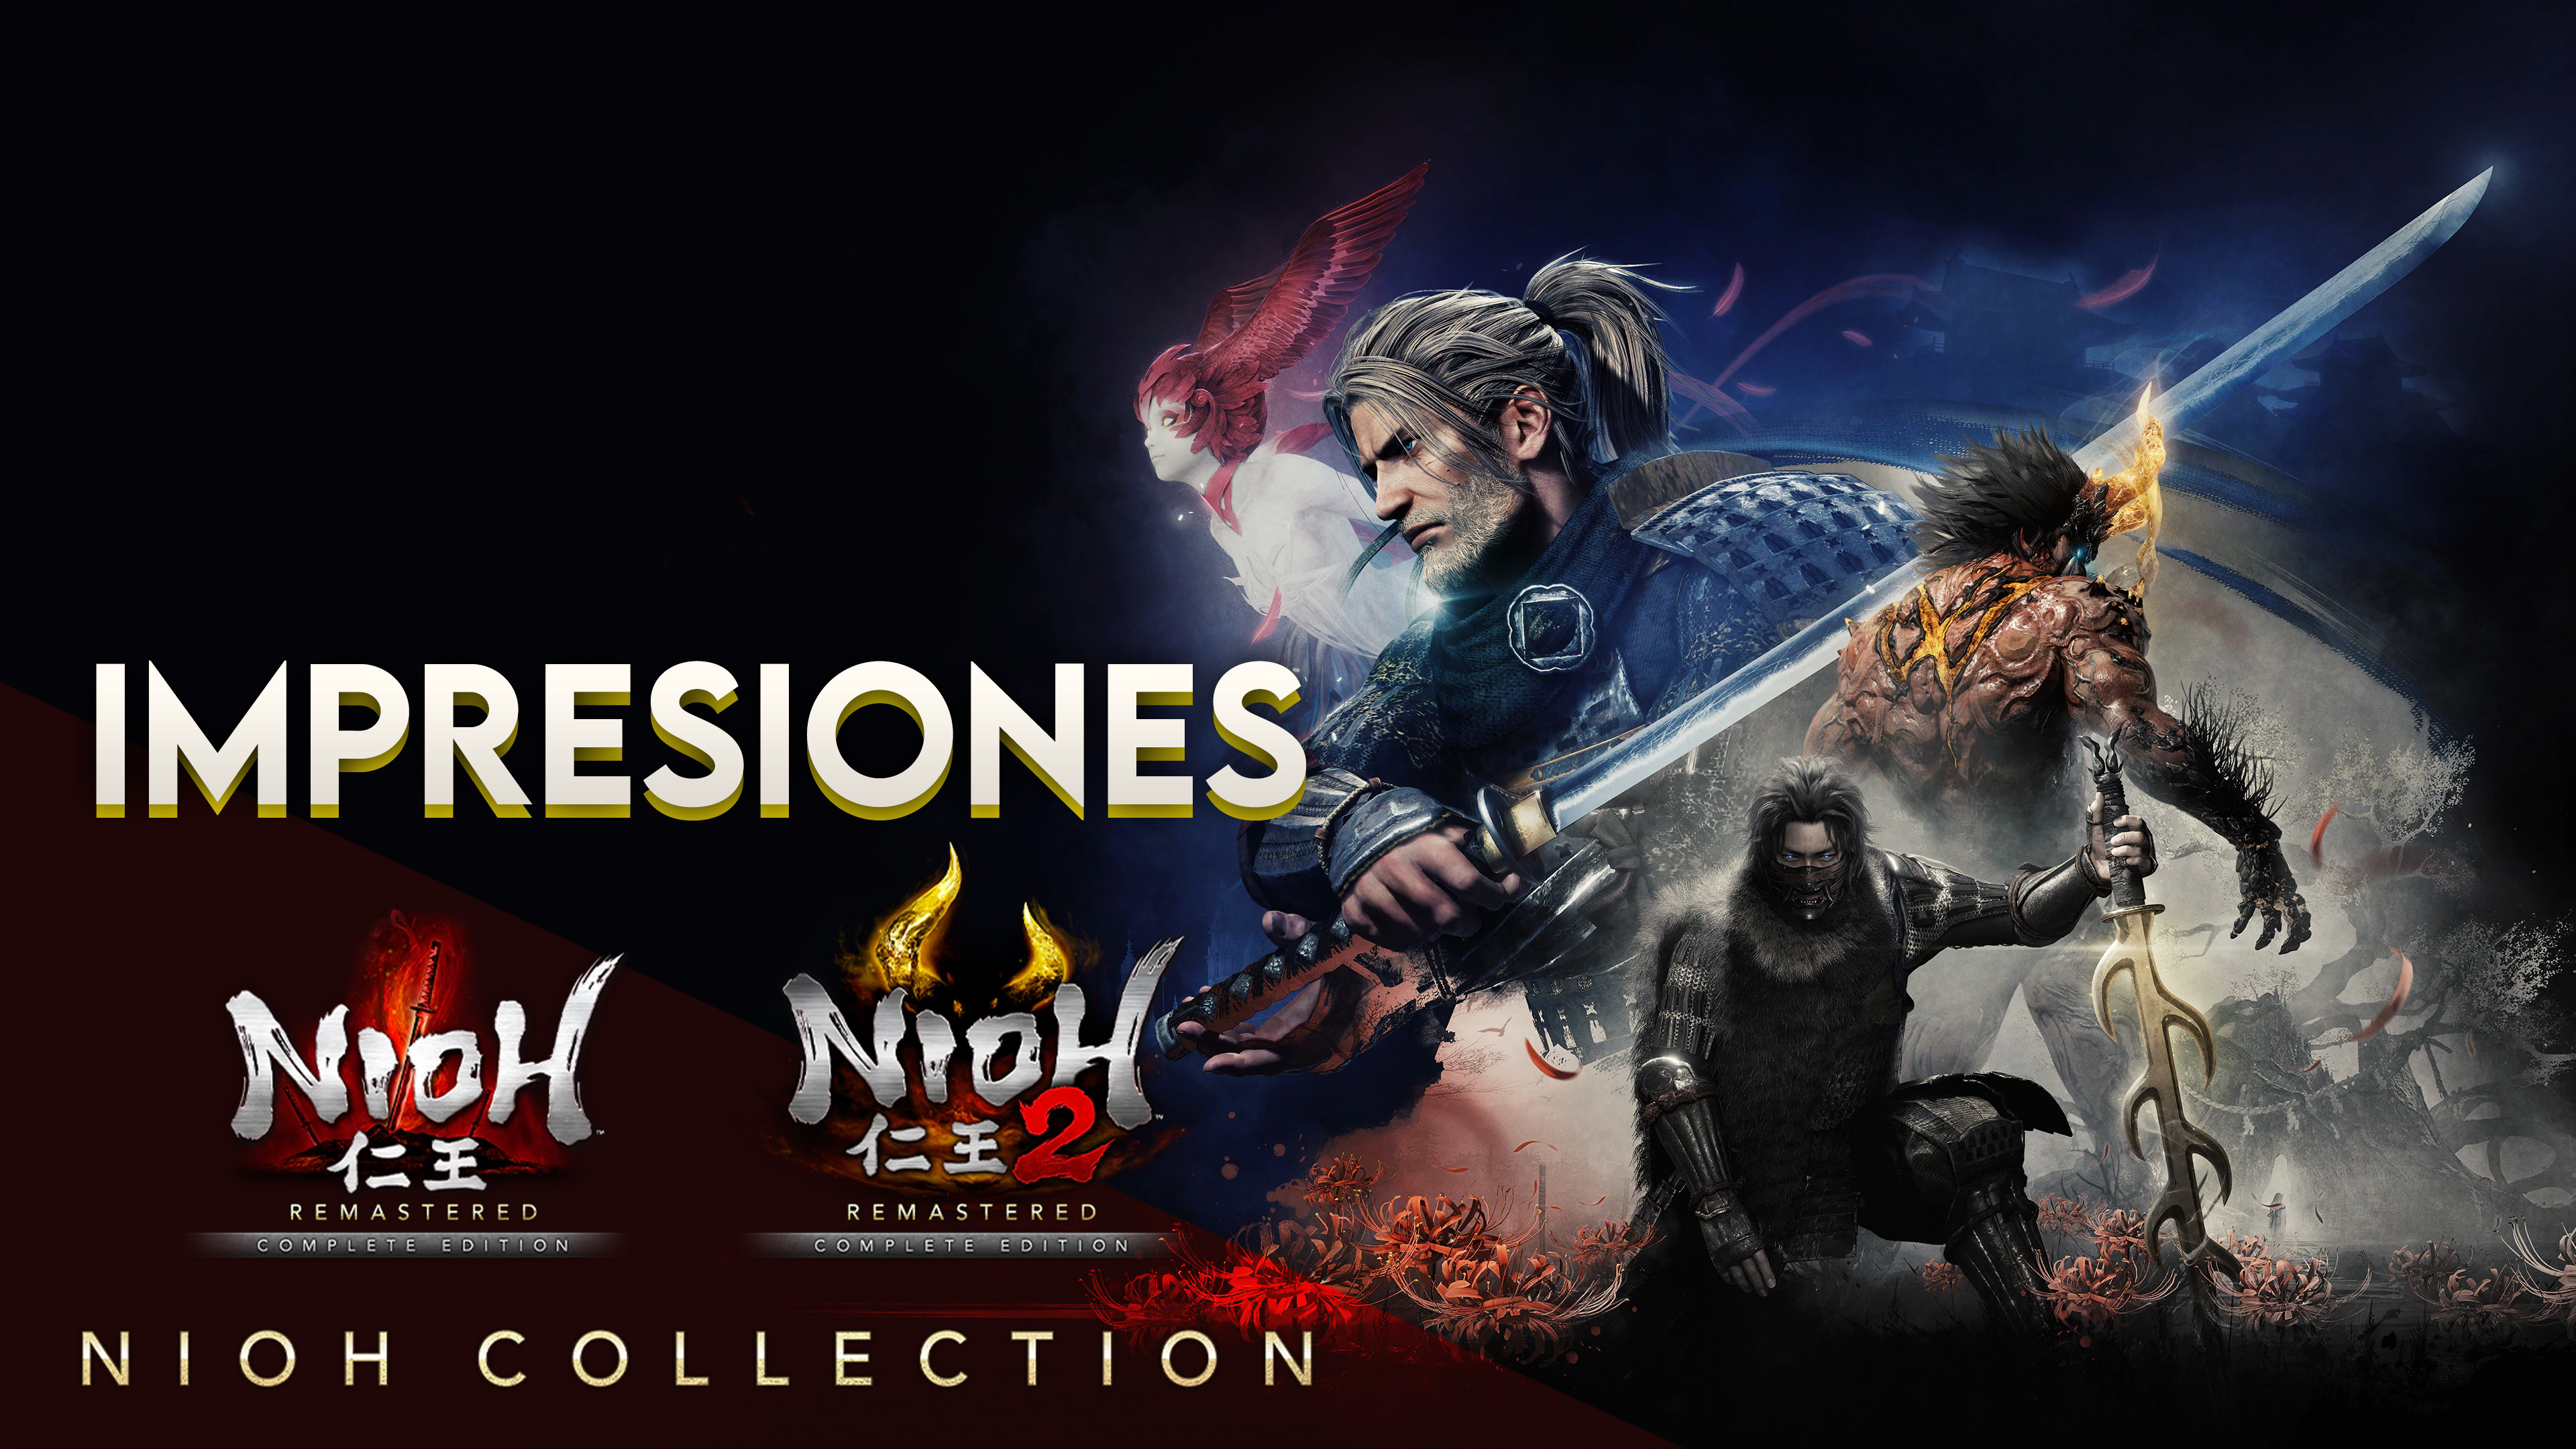 Impresiones The Nioh Collection